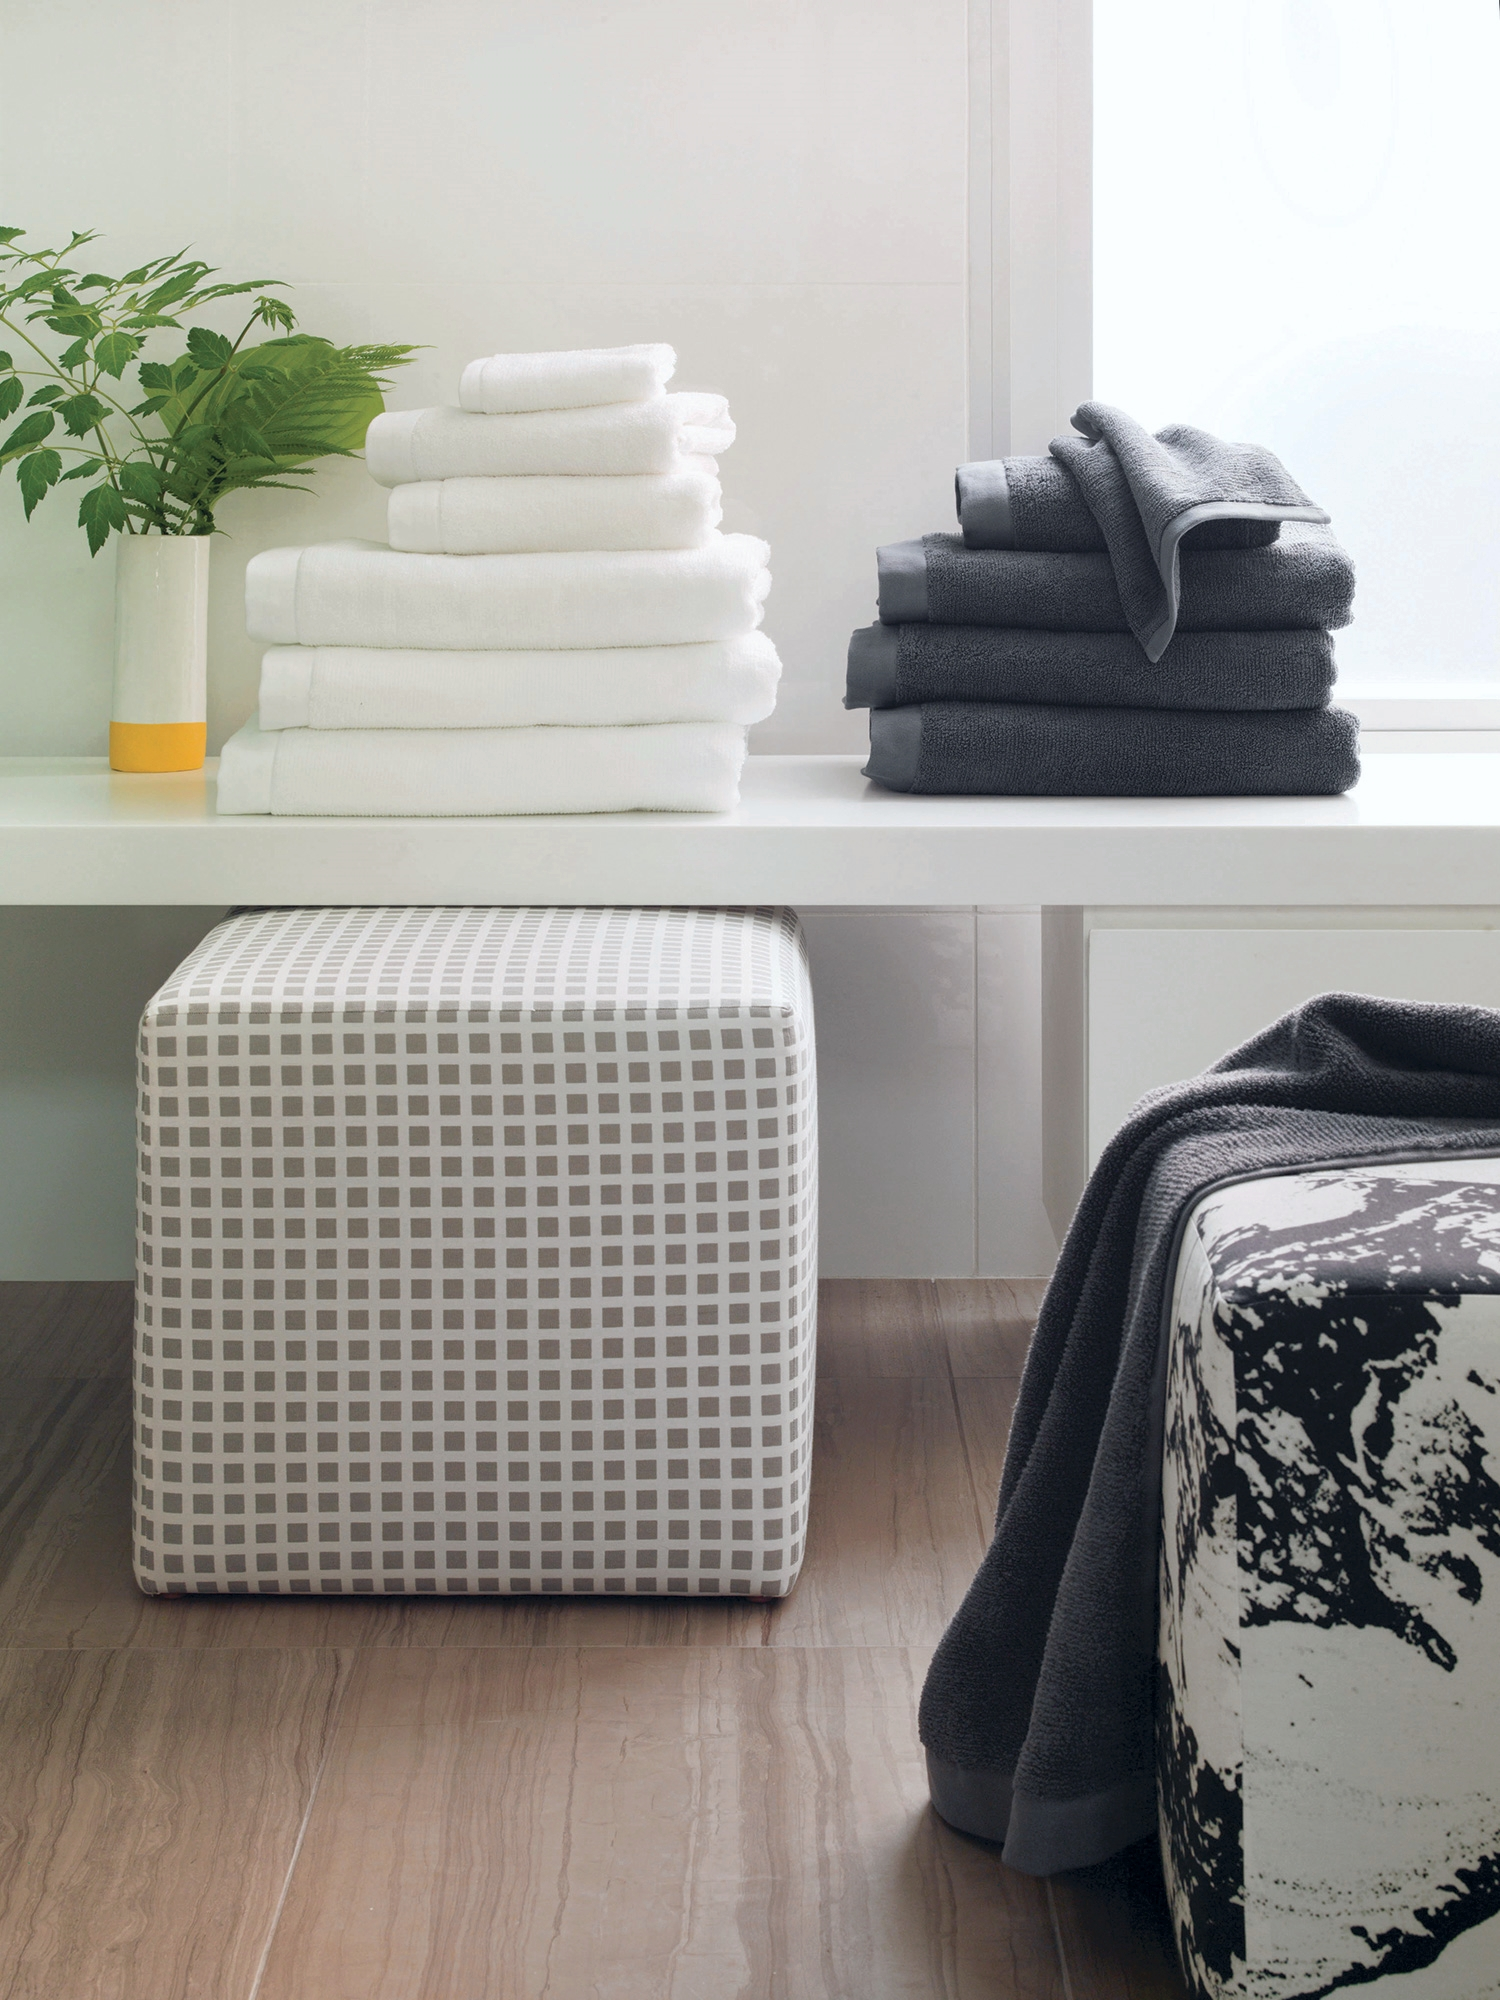 Cubes-and-towels_1130.jpg